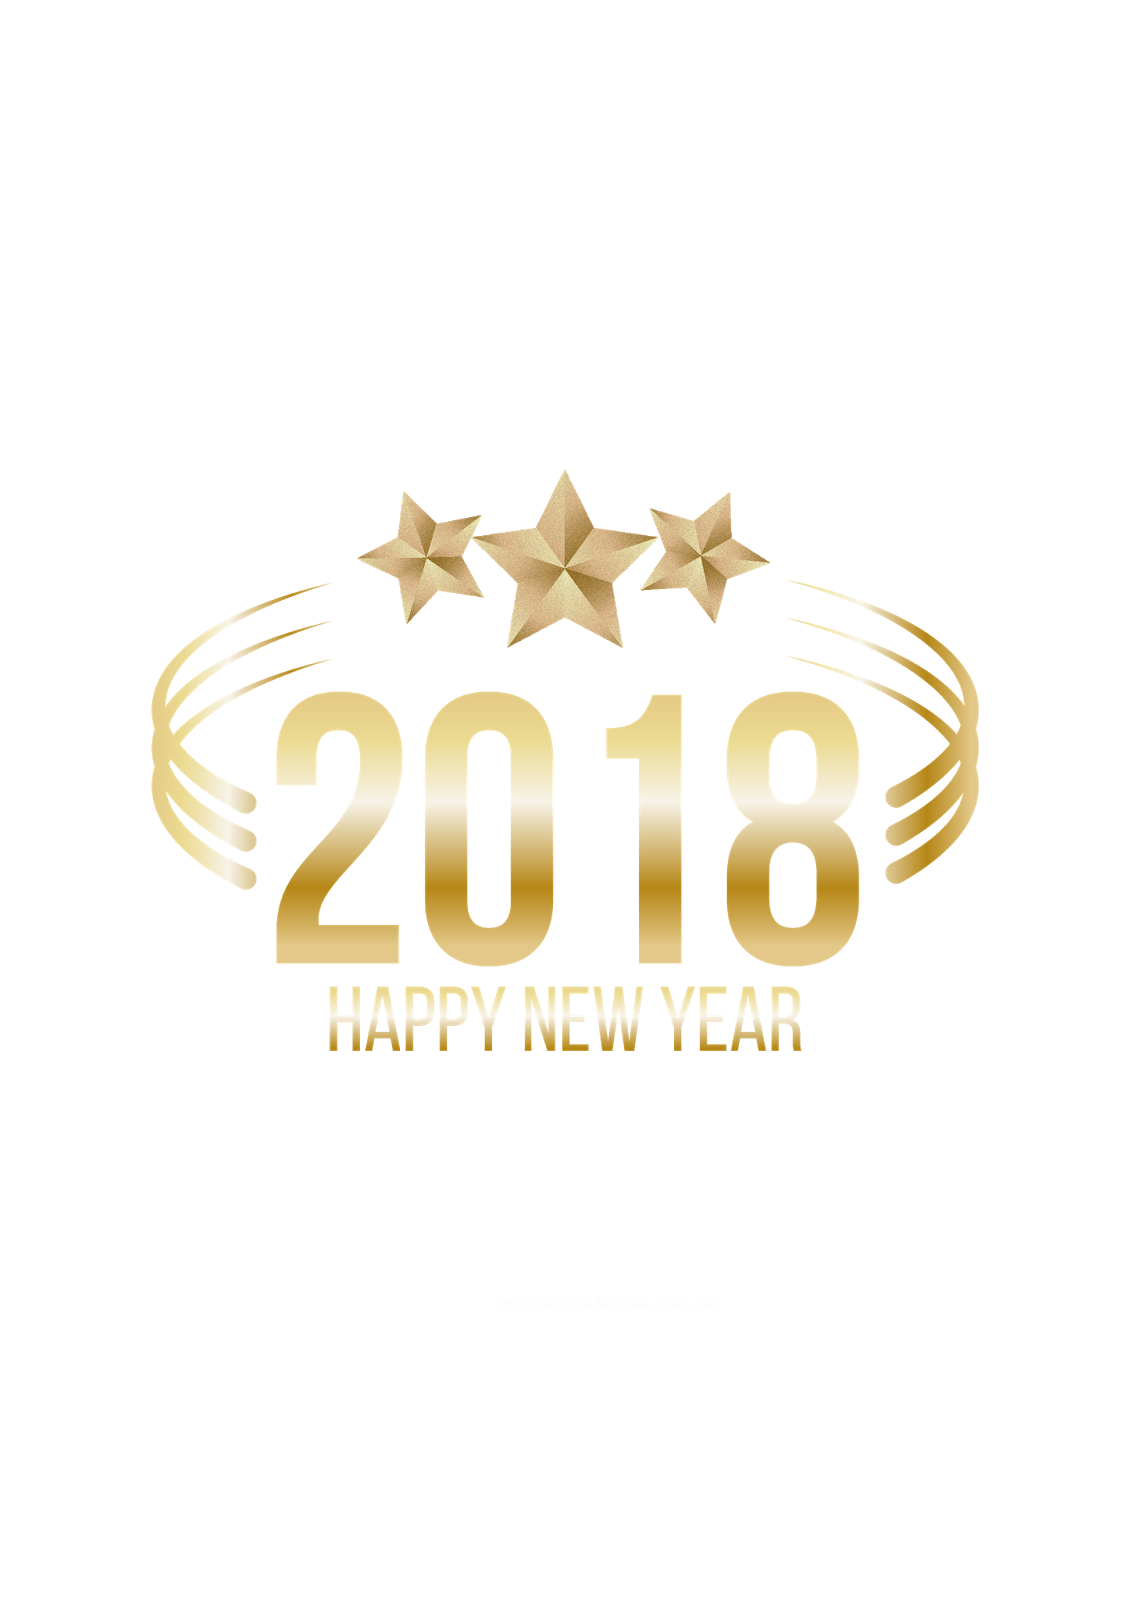 Happy New Year photo 2018 png.